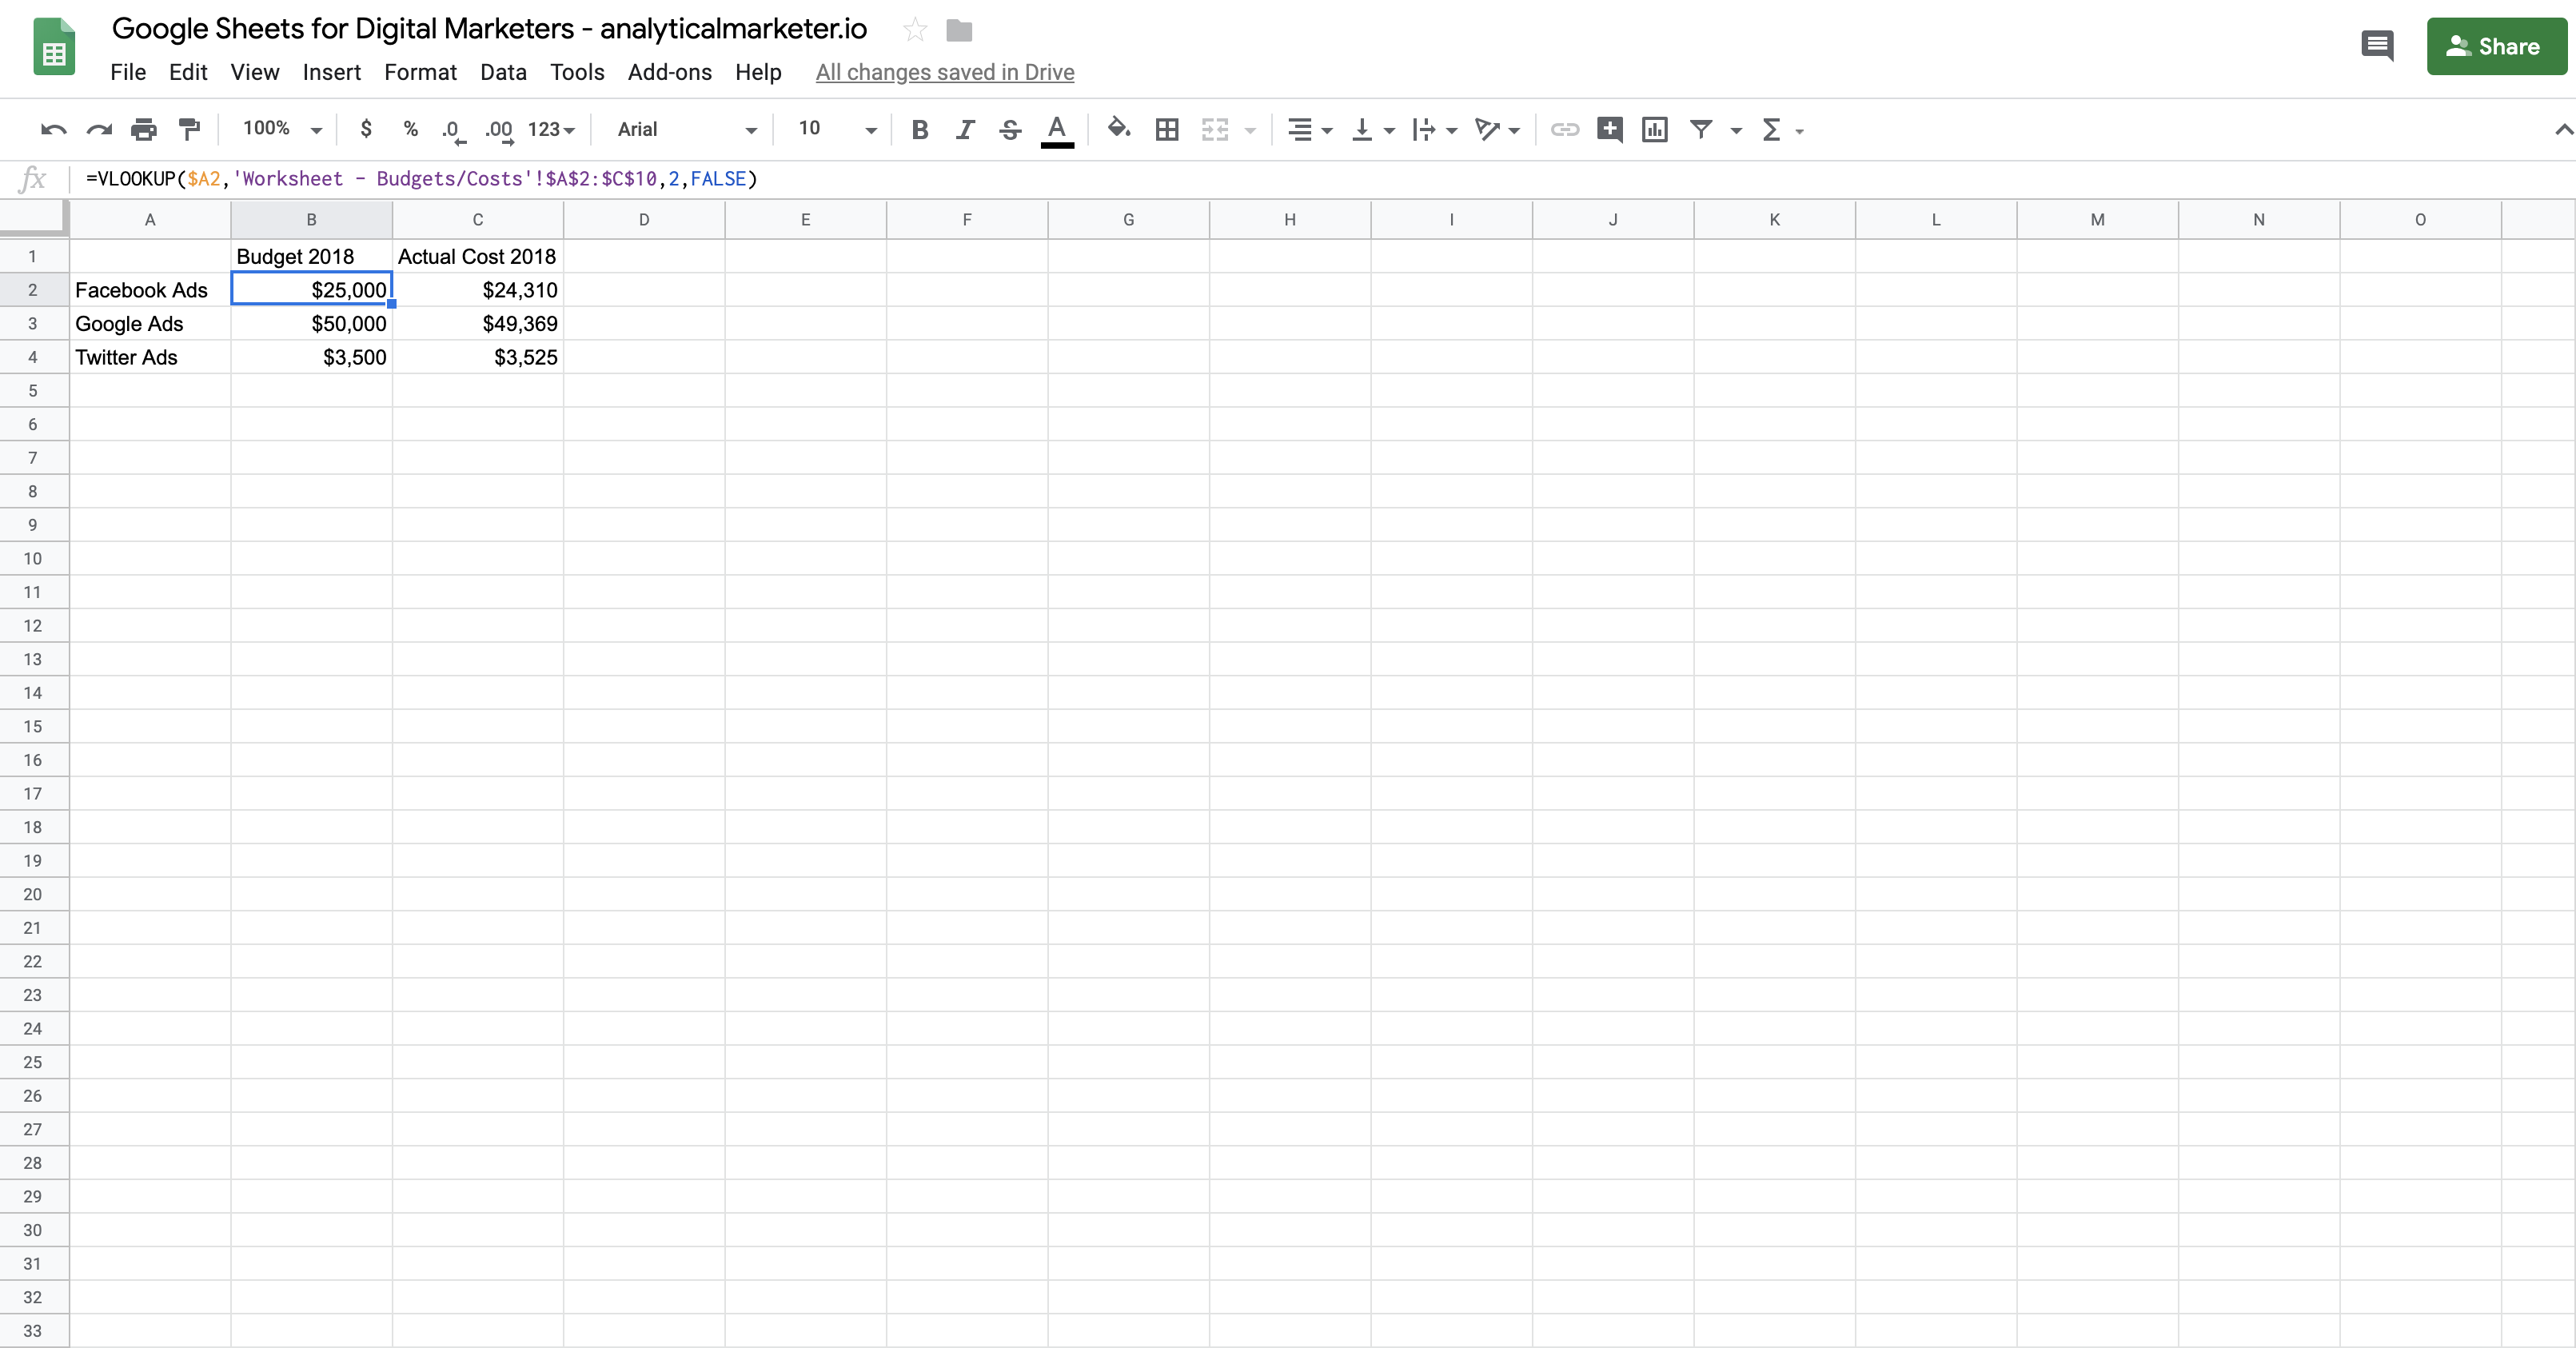 Google Sheets formulas for marketing - VLOOKUP